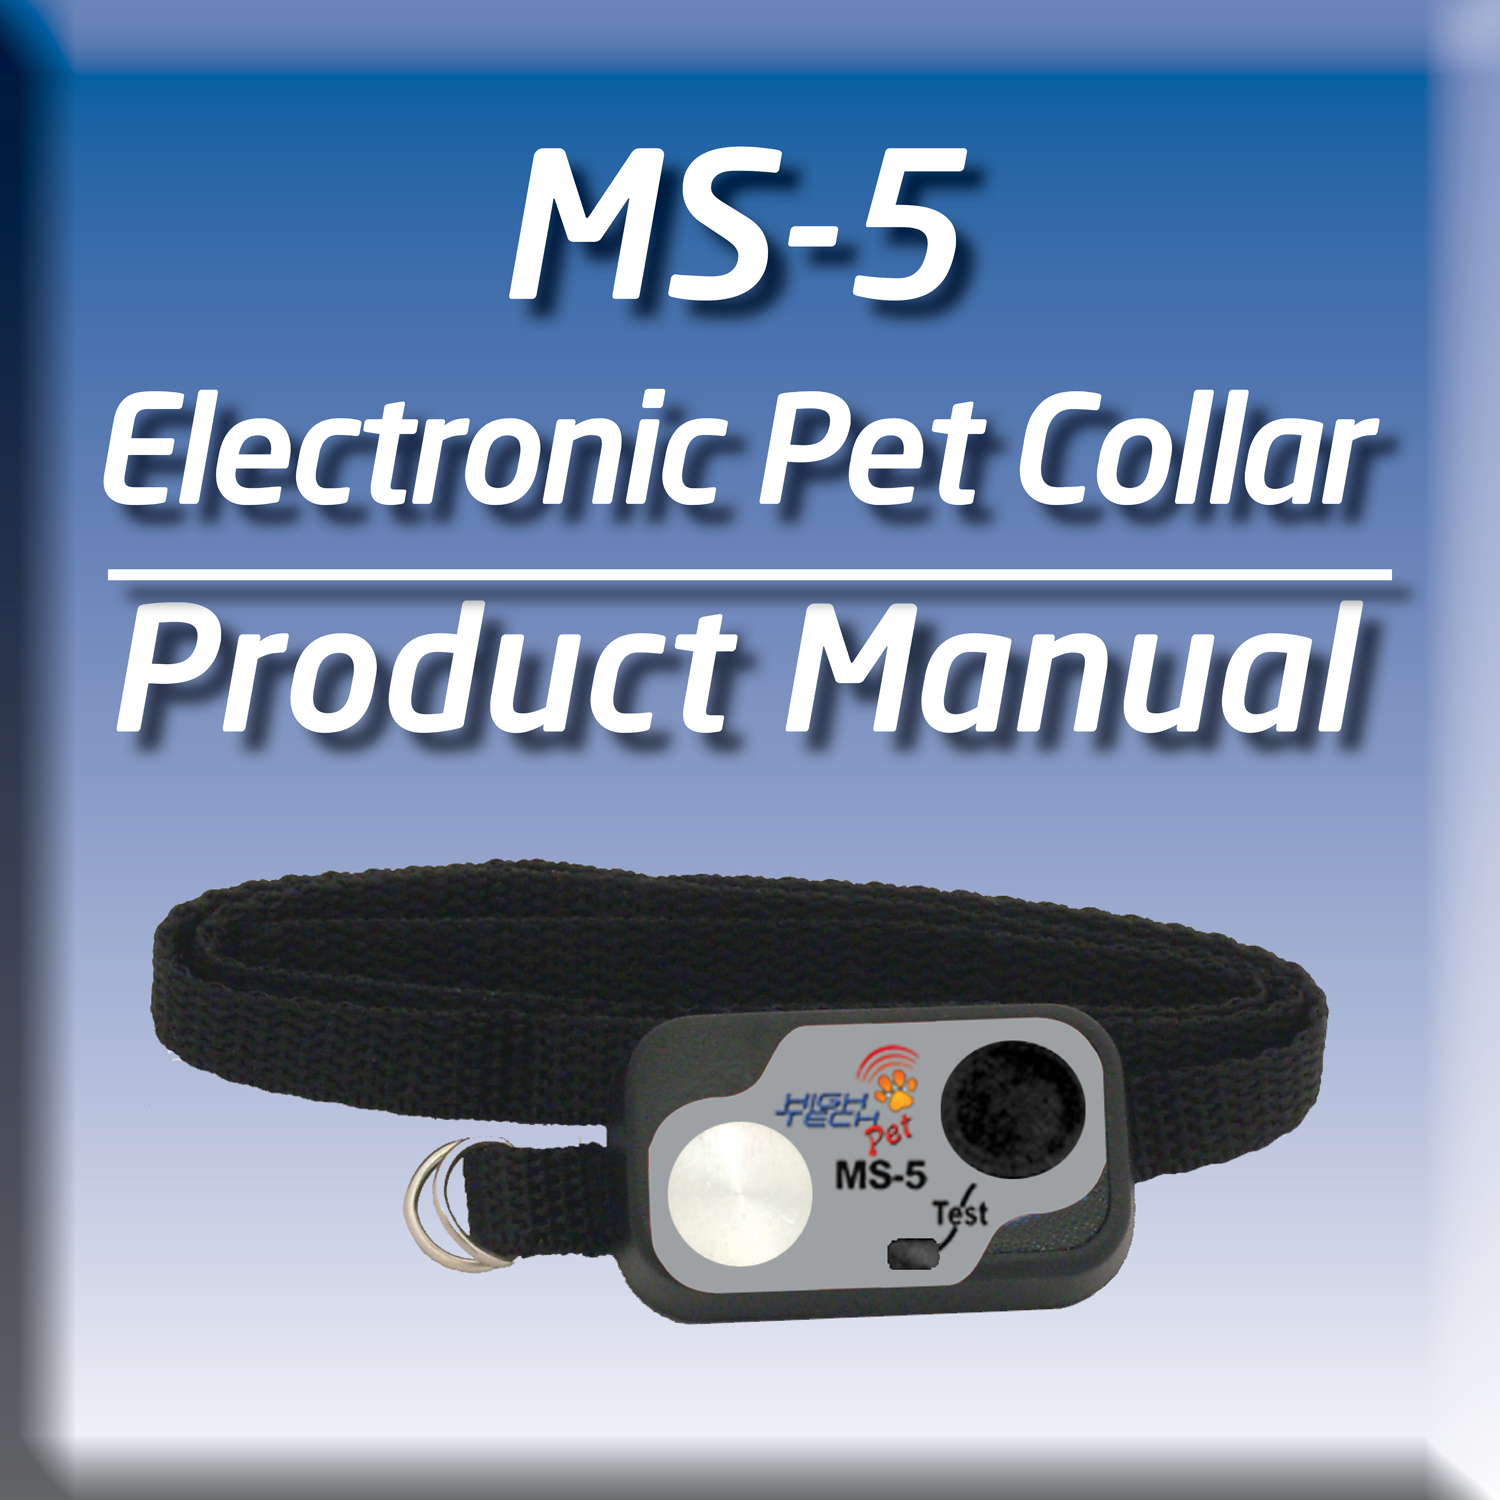 dog collar works with your electronic pet door, electric fence, sound barrier, and yard barrier